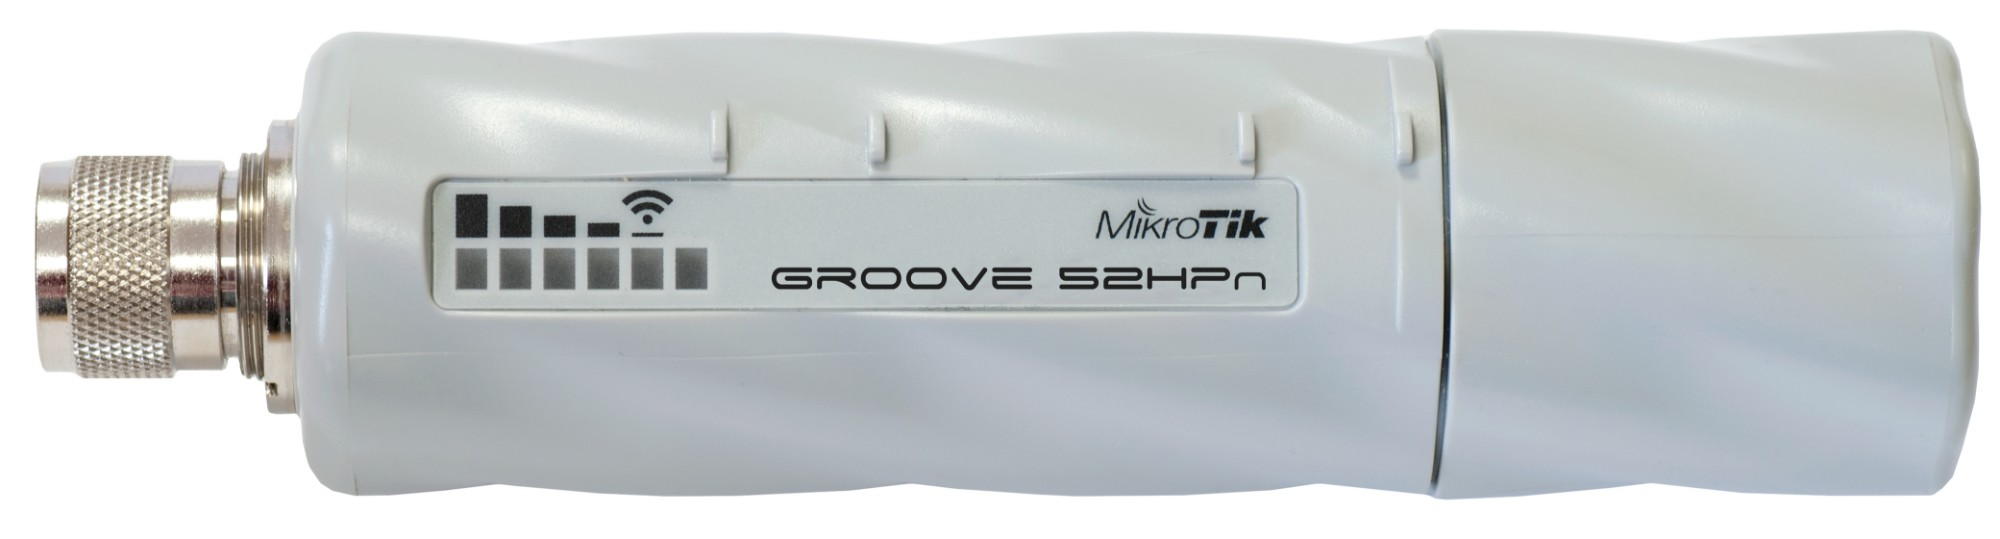 Mikrotik GrooveA 52HPn Power over Ethernet (PoE) Grey WLAN access point